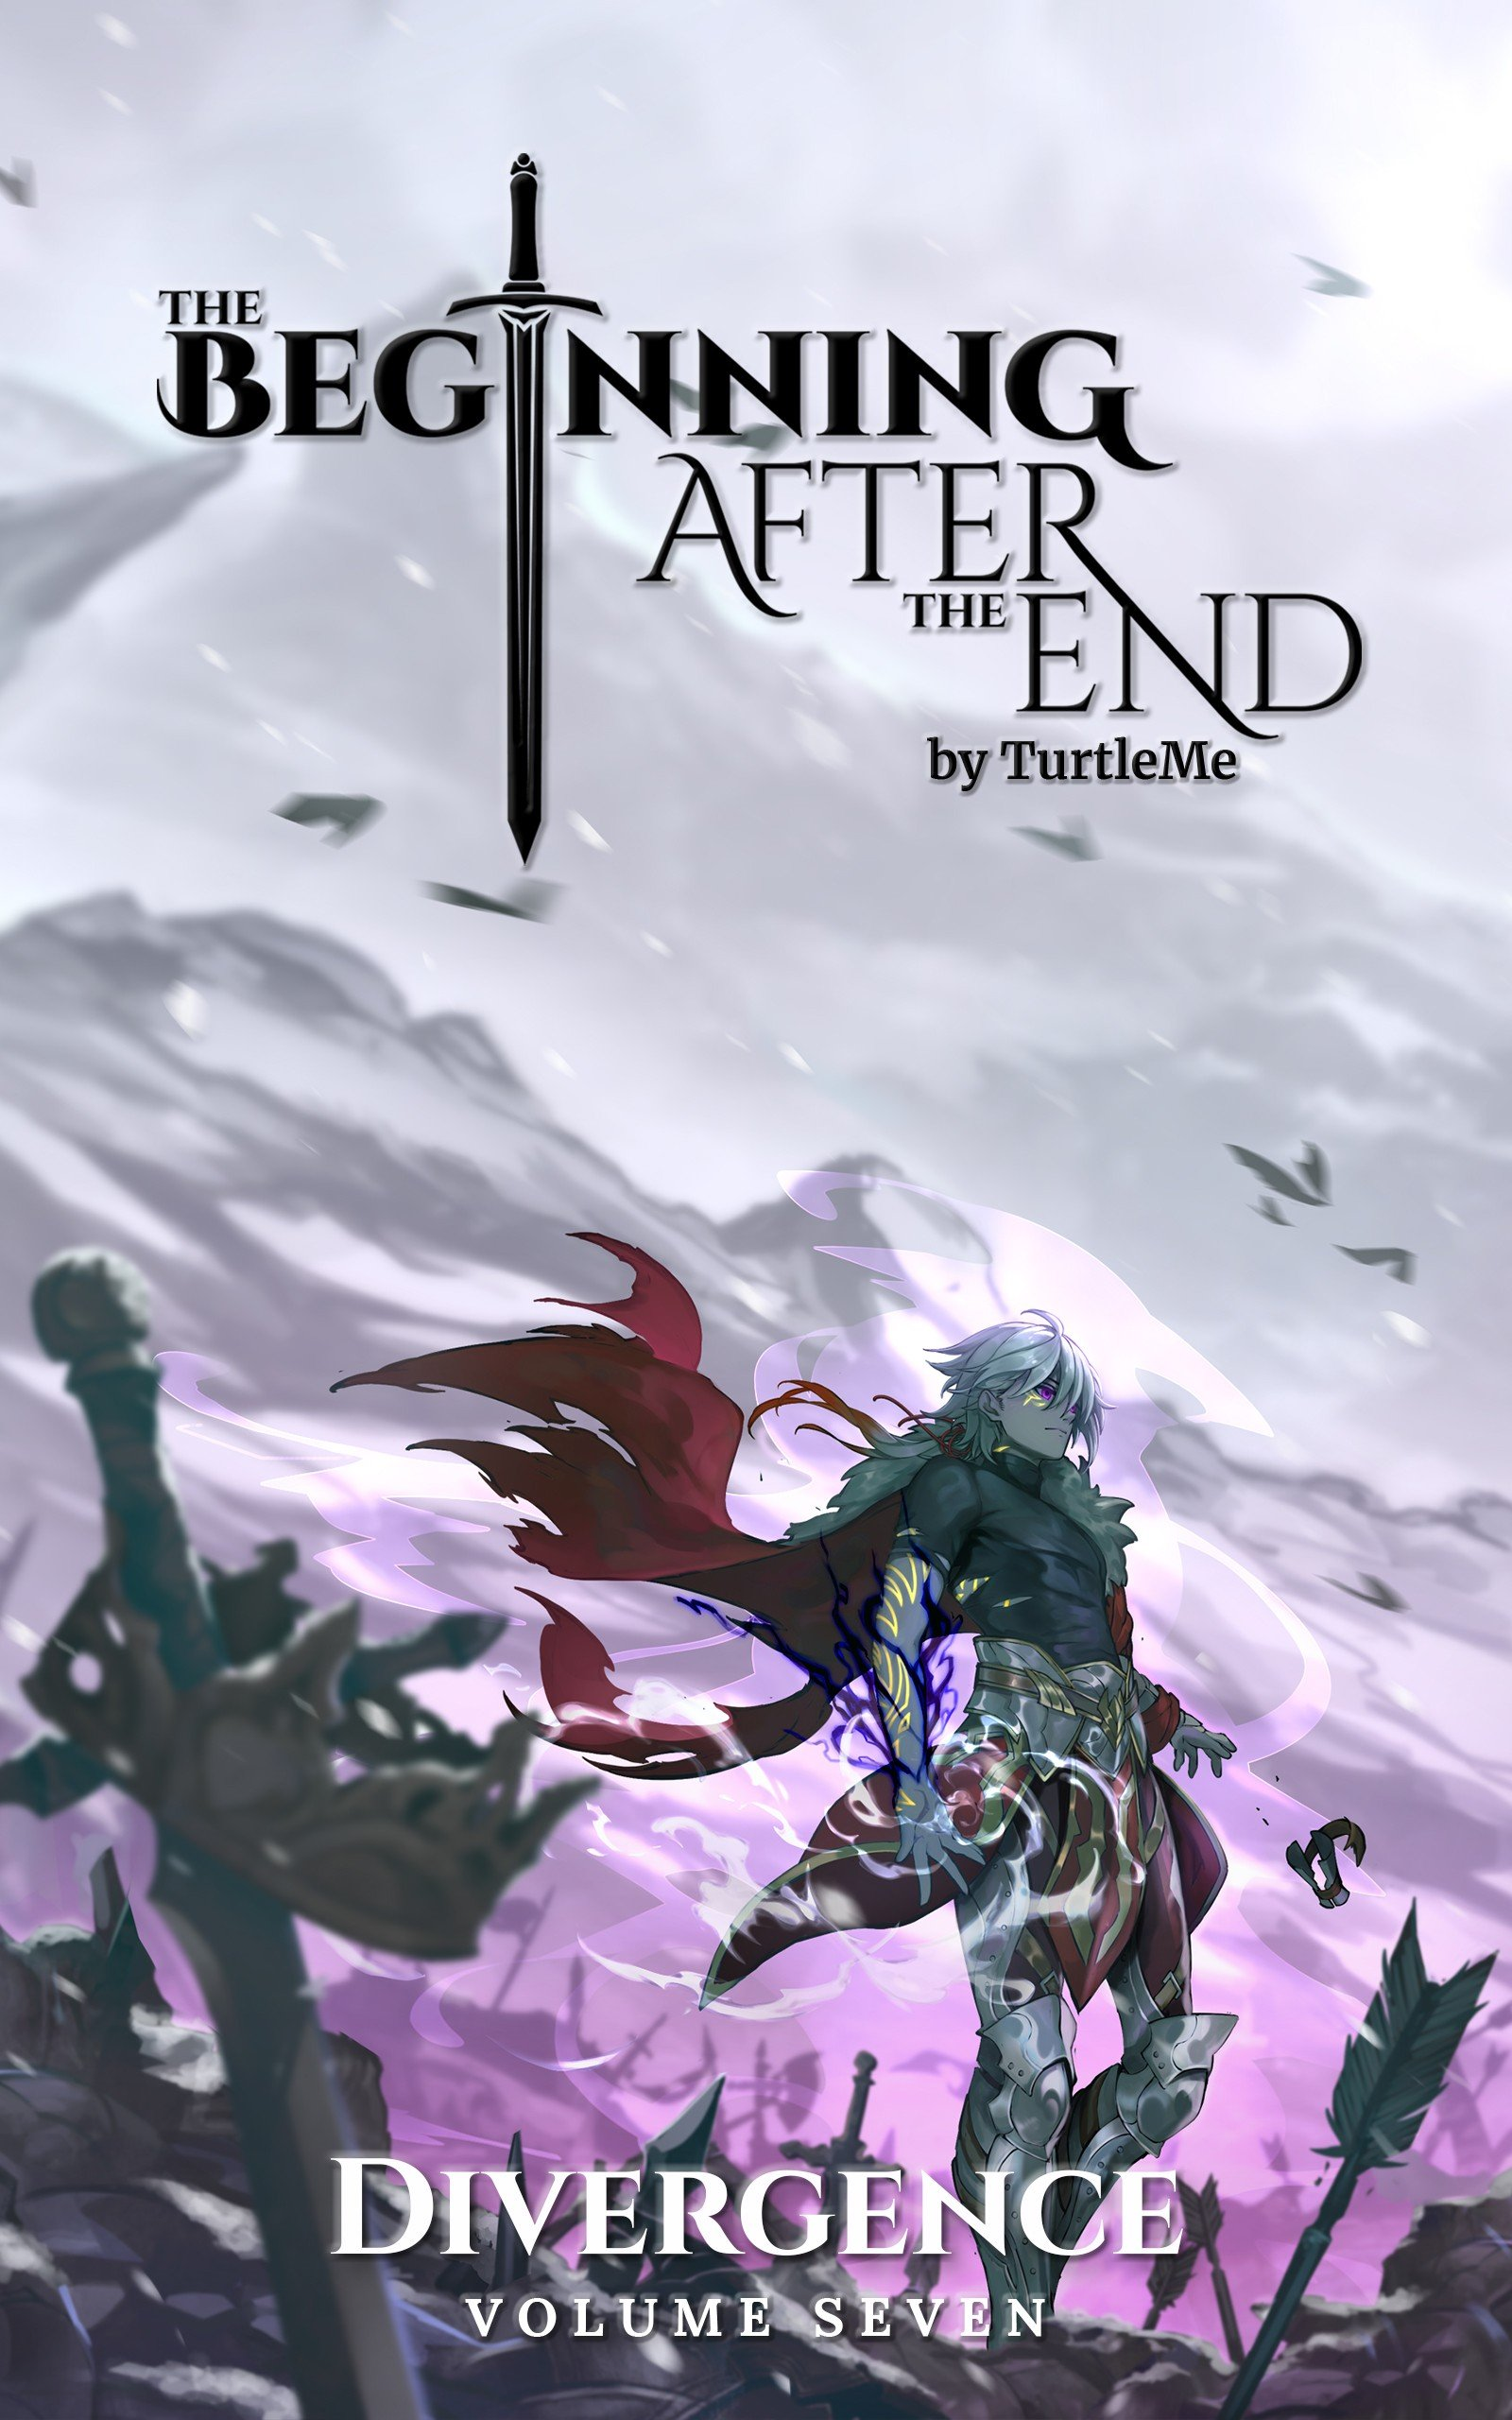 Volumes And Chapters The Beginning After The End Wiki Fandom Read the latest chapter of the beginning after the end (by turtleme) at webnovelonline. the beginning after the end wiki